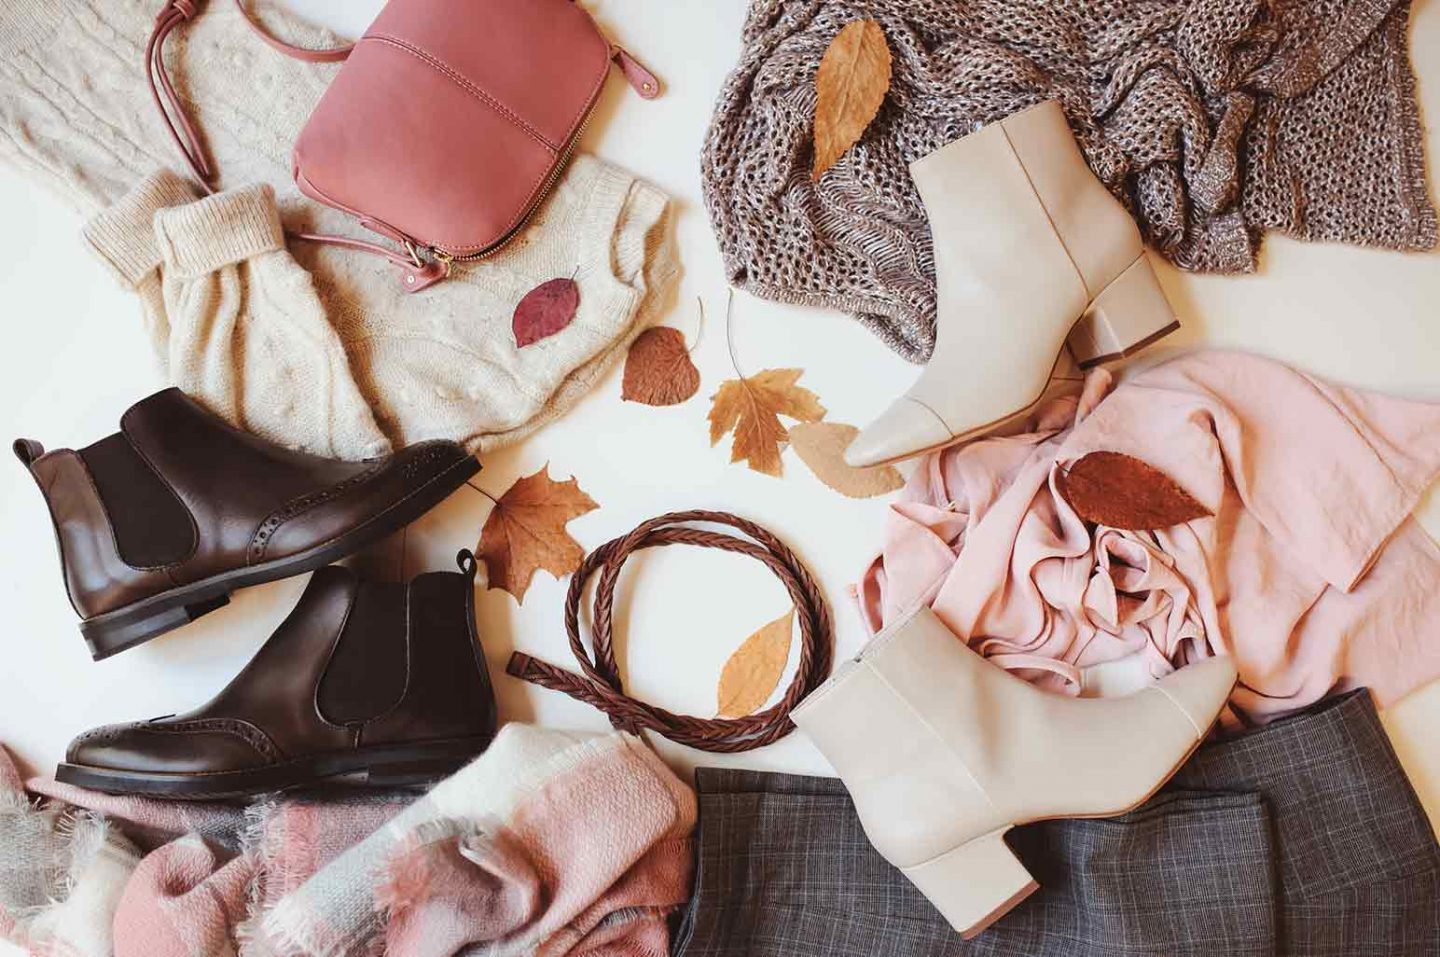 How To Save Money Buying Clothes To Buy More